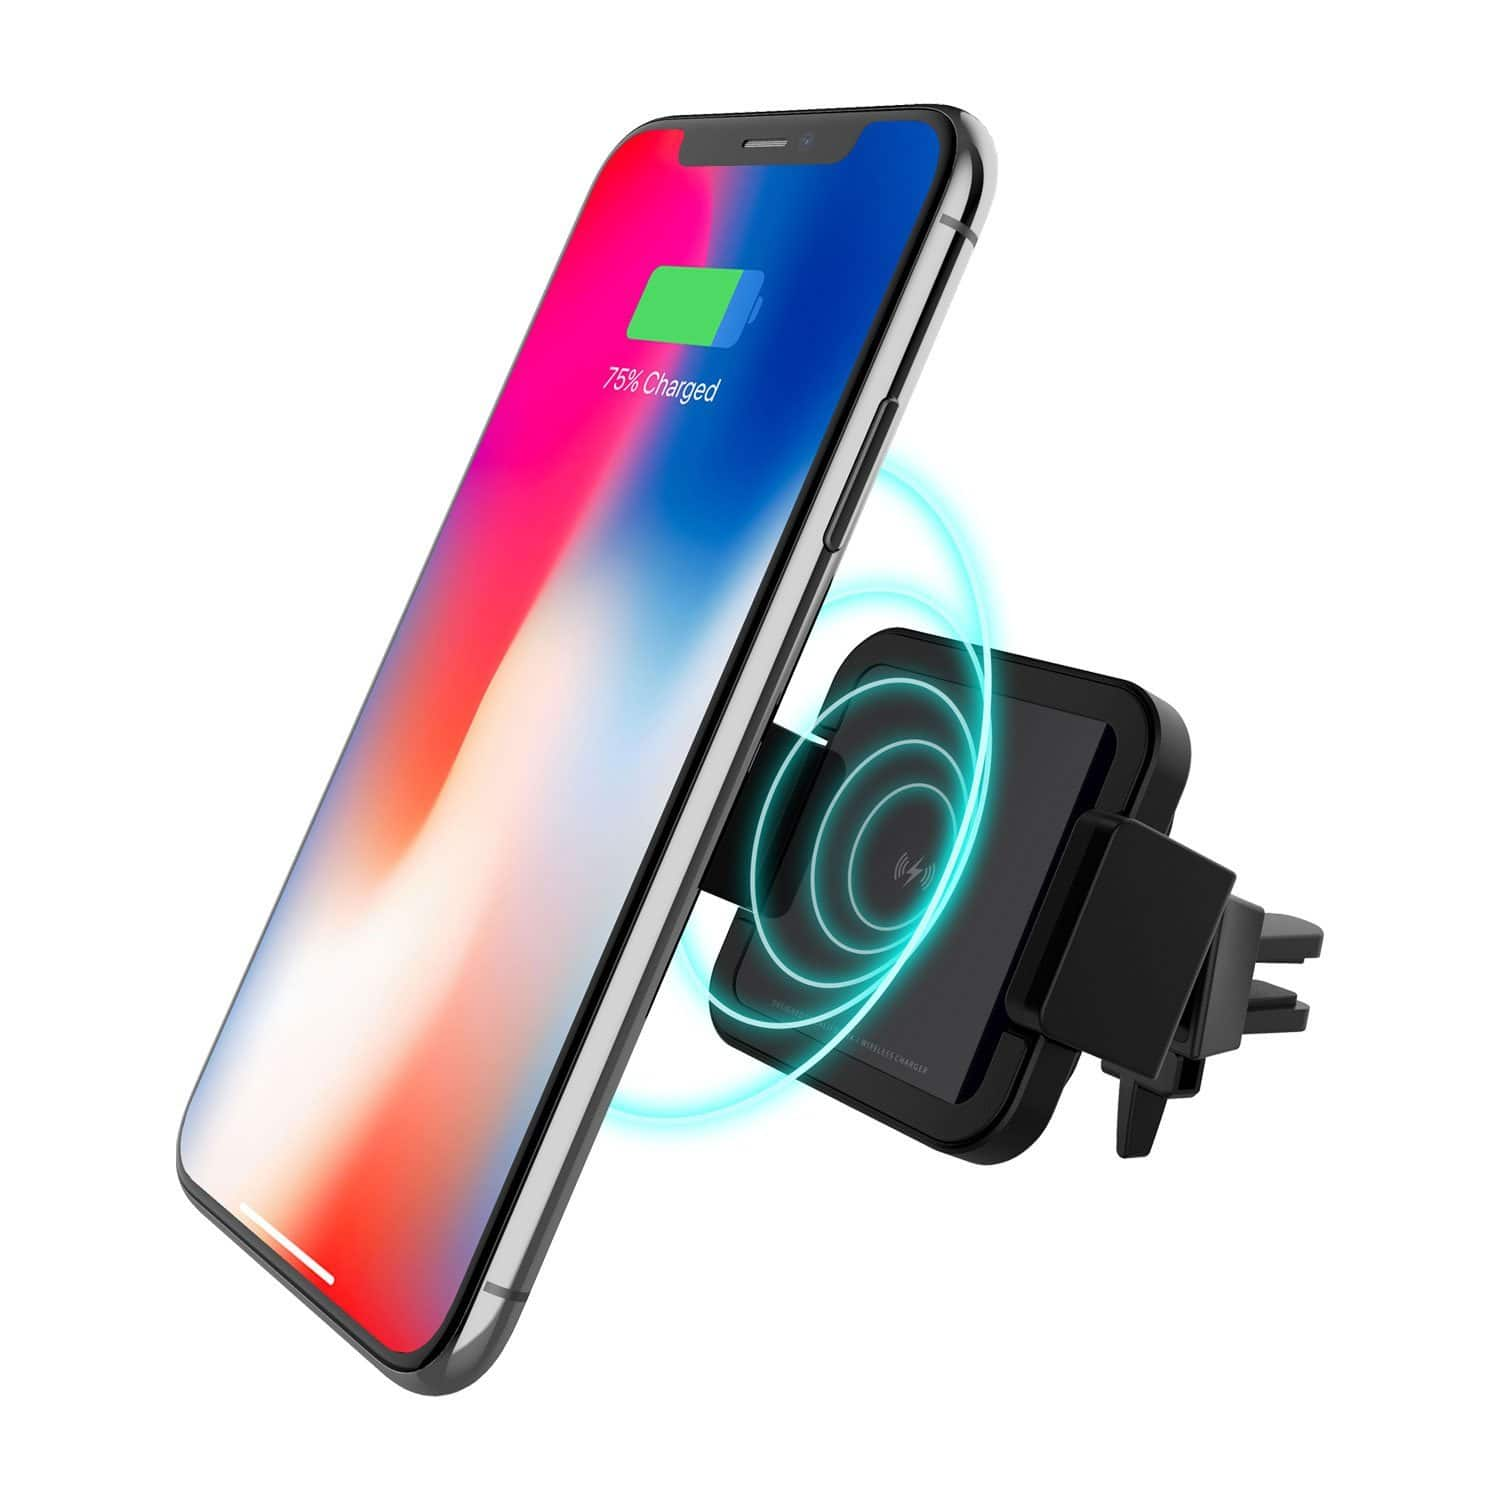 Patchworks: Qi Wireless Charger Fast Charging Car Air Vent Mount Phone Holder $20, Cases for iPhone X / 7 / 8, Galaxy S9 / S9 Plus, Note 8 & More $6 Each + Free Shipping